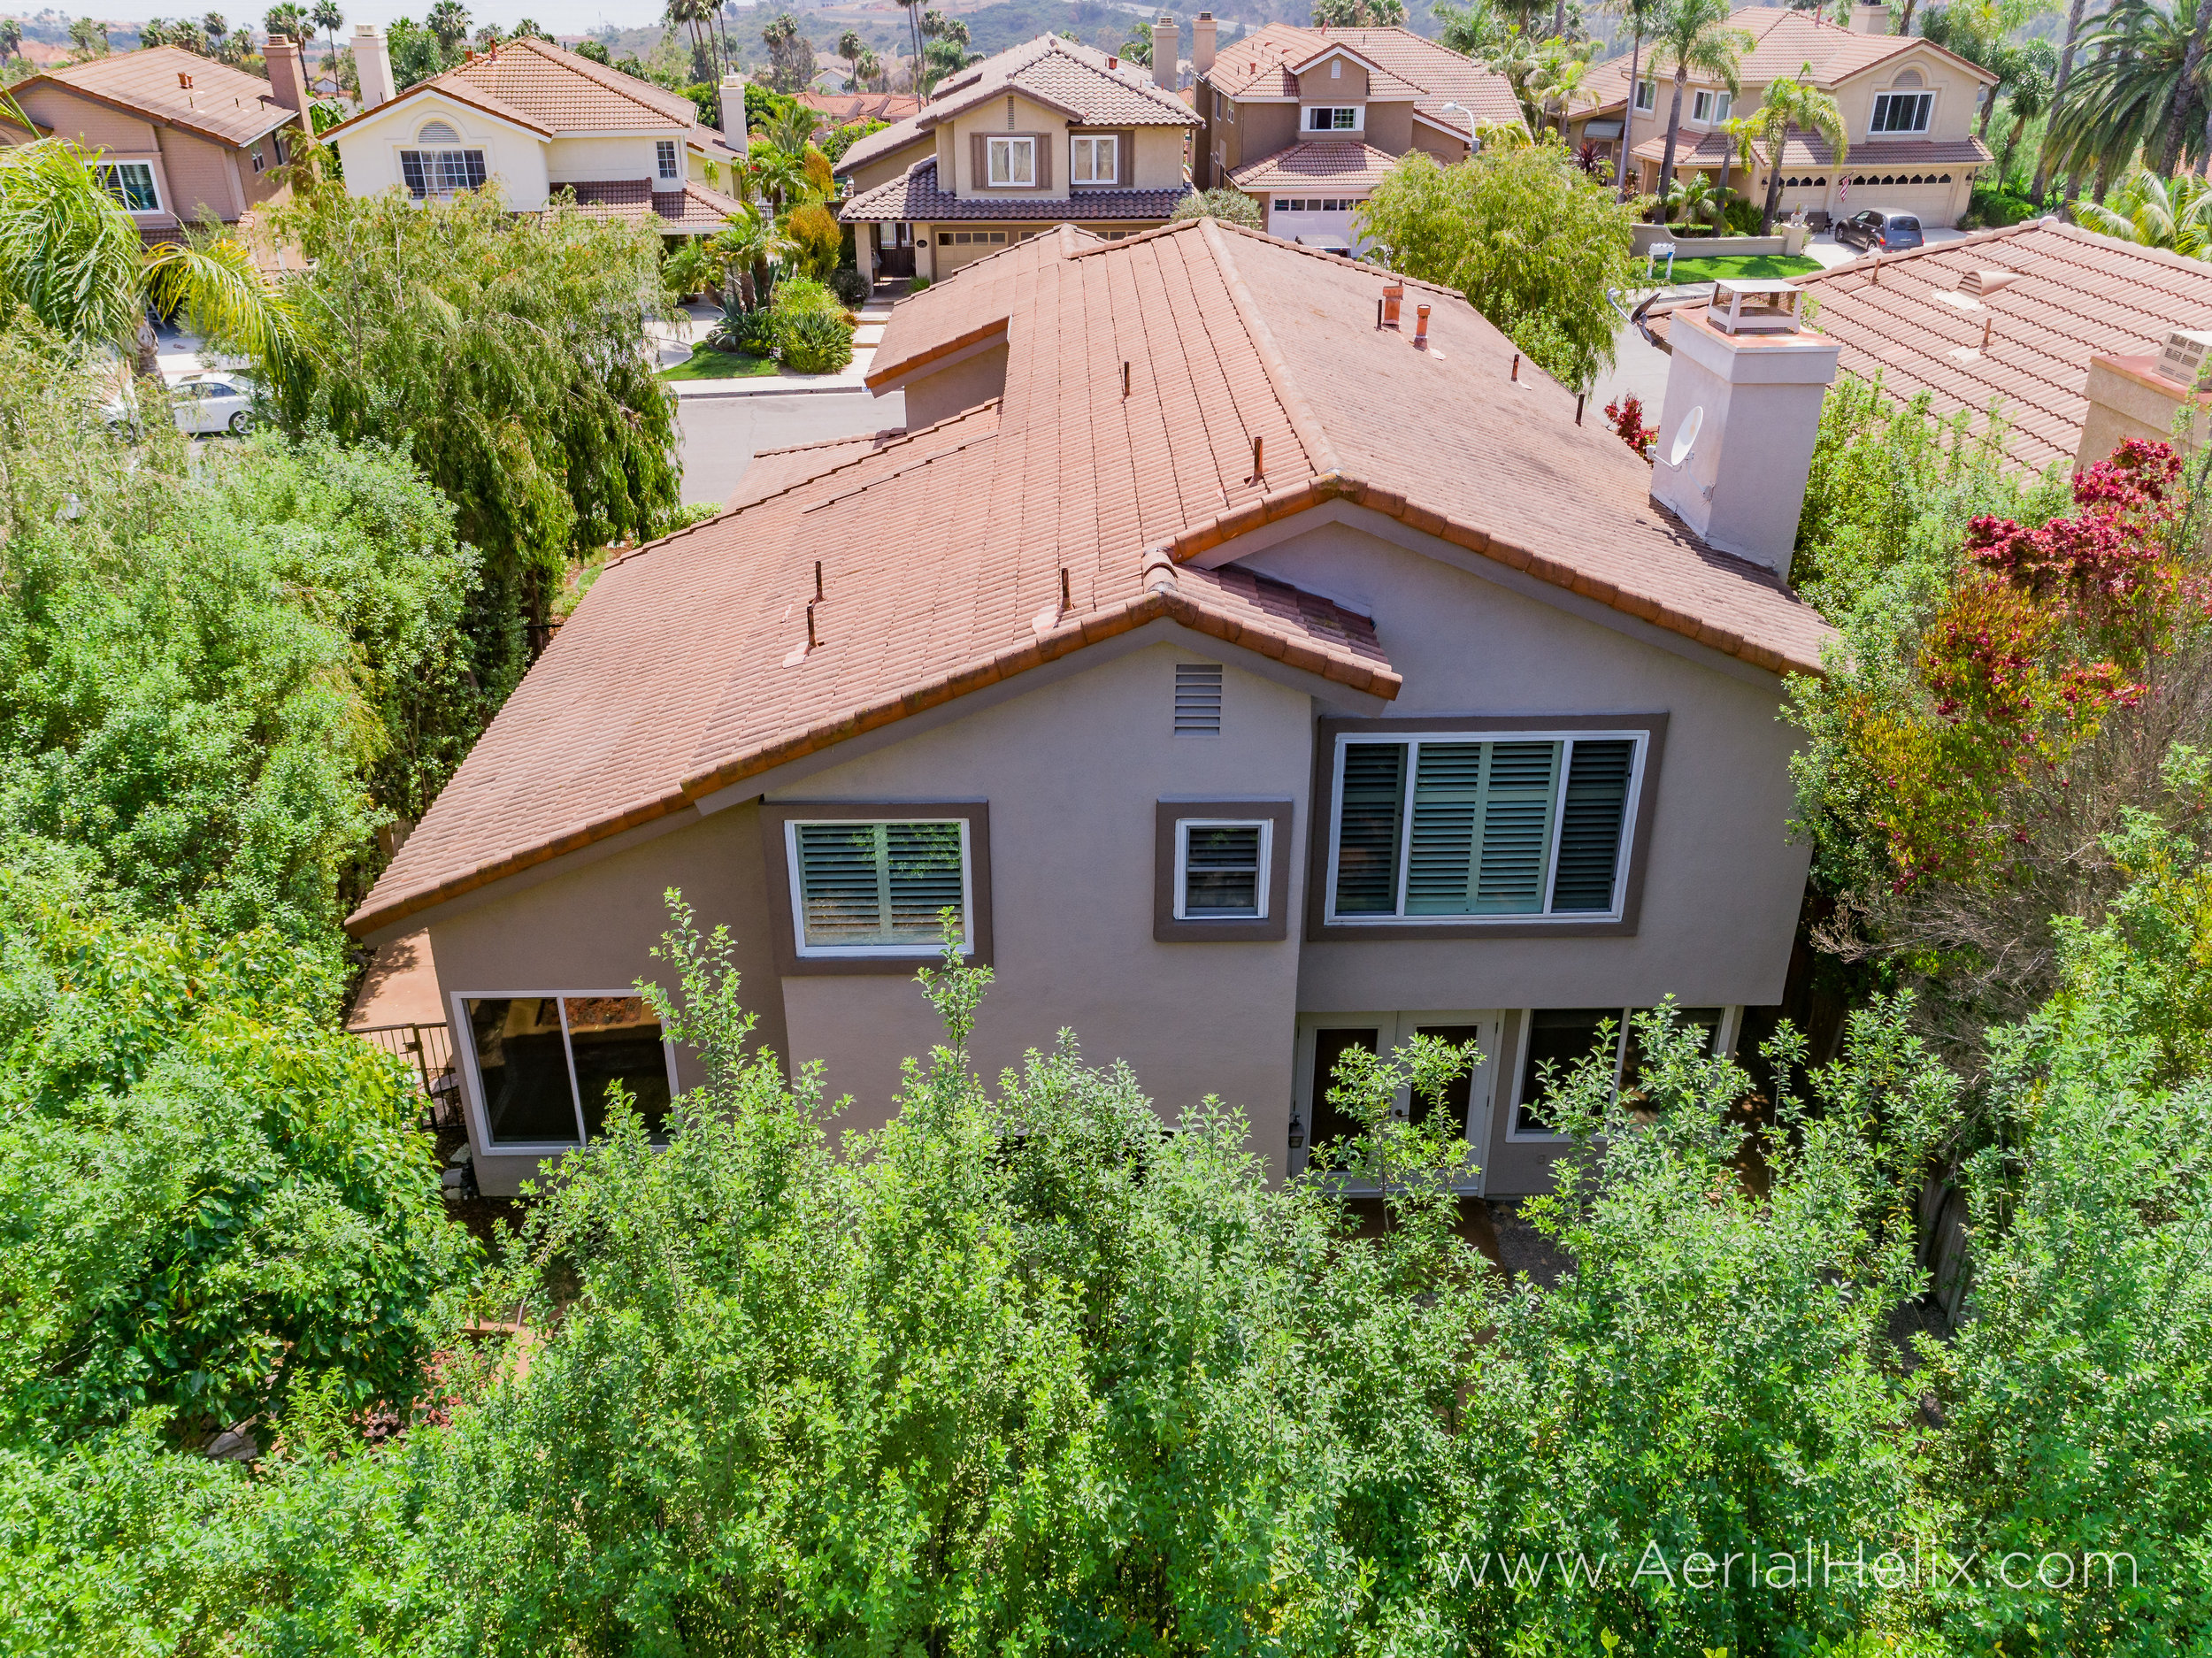 HELIX - Frigate Drive - Real Estate Drone Photographer-13.jpg